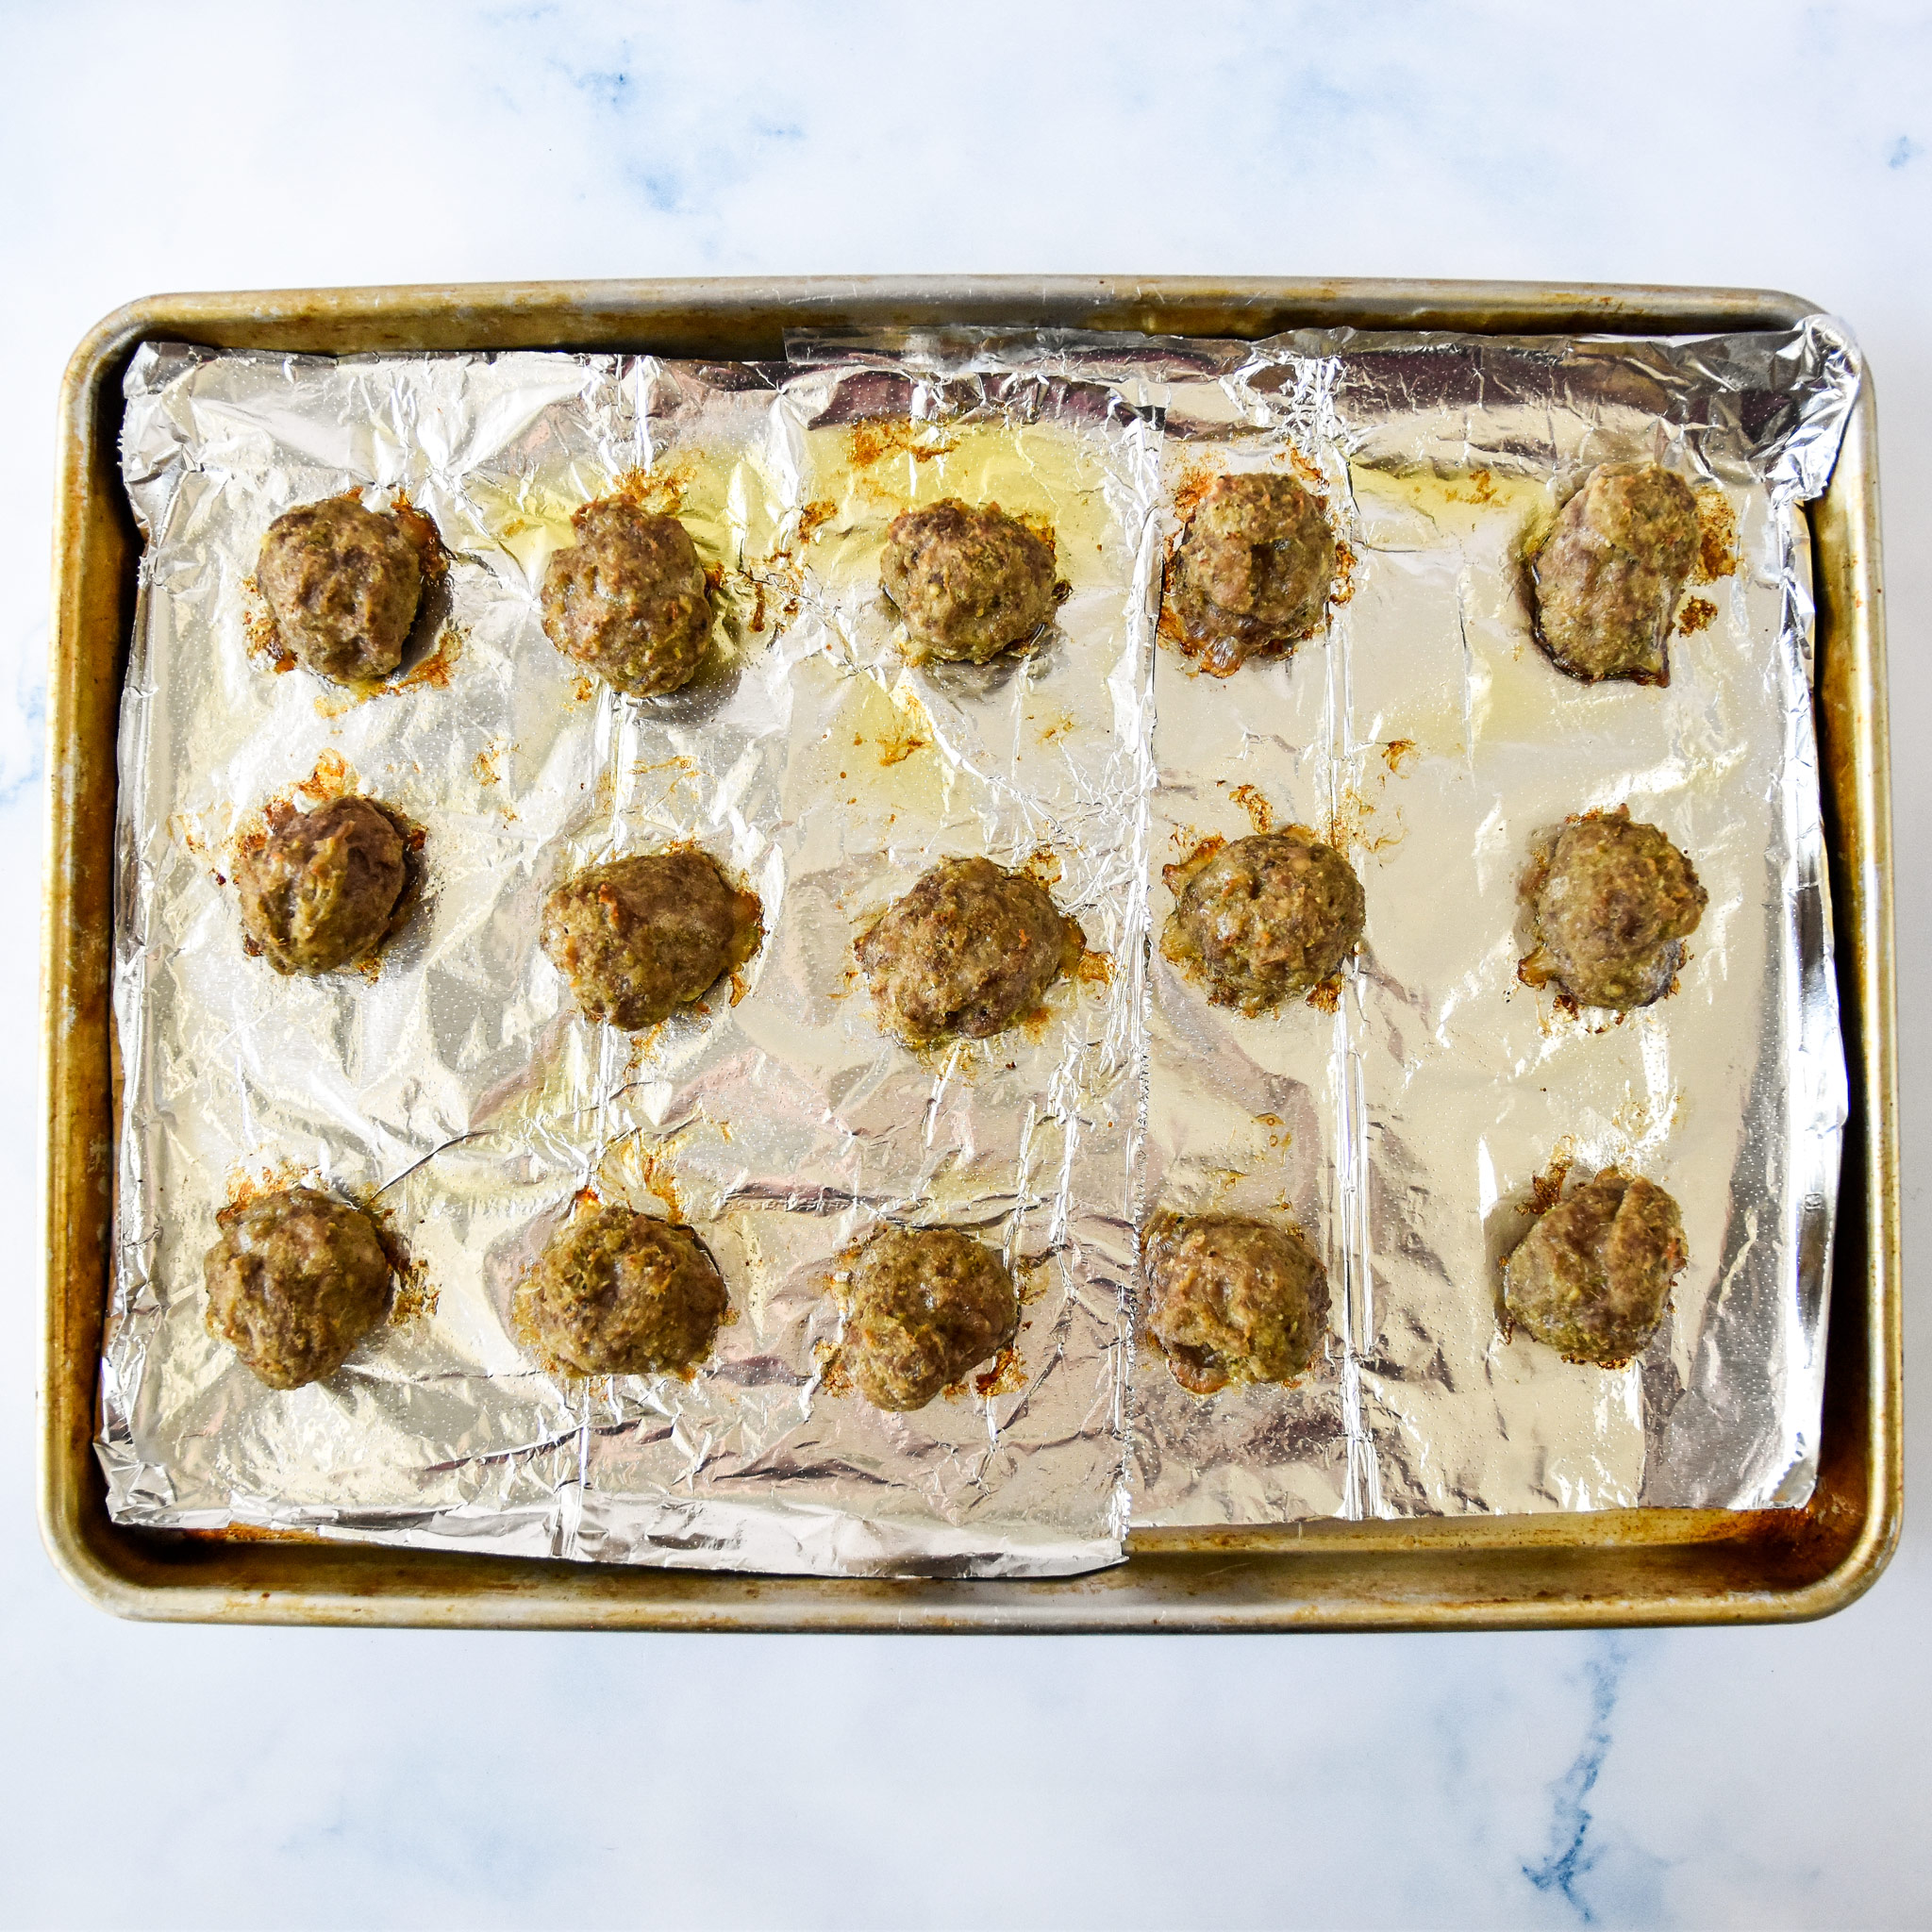 fresh baked easy freezer friendly meatballs on a sheet pan.